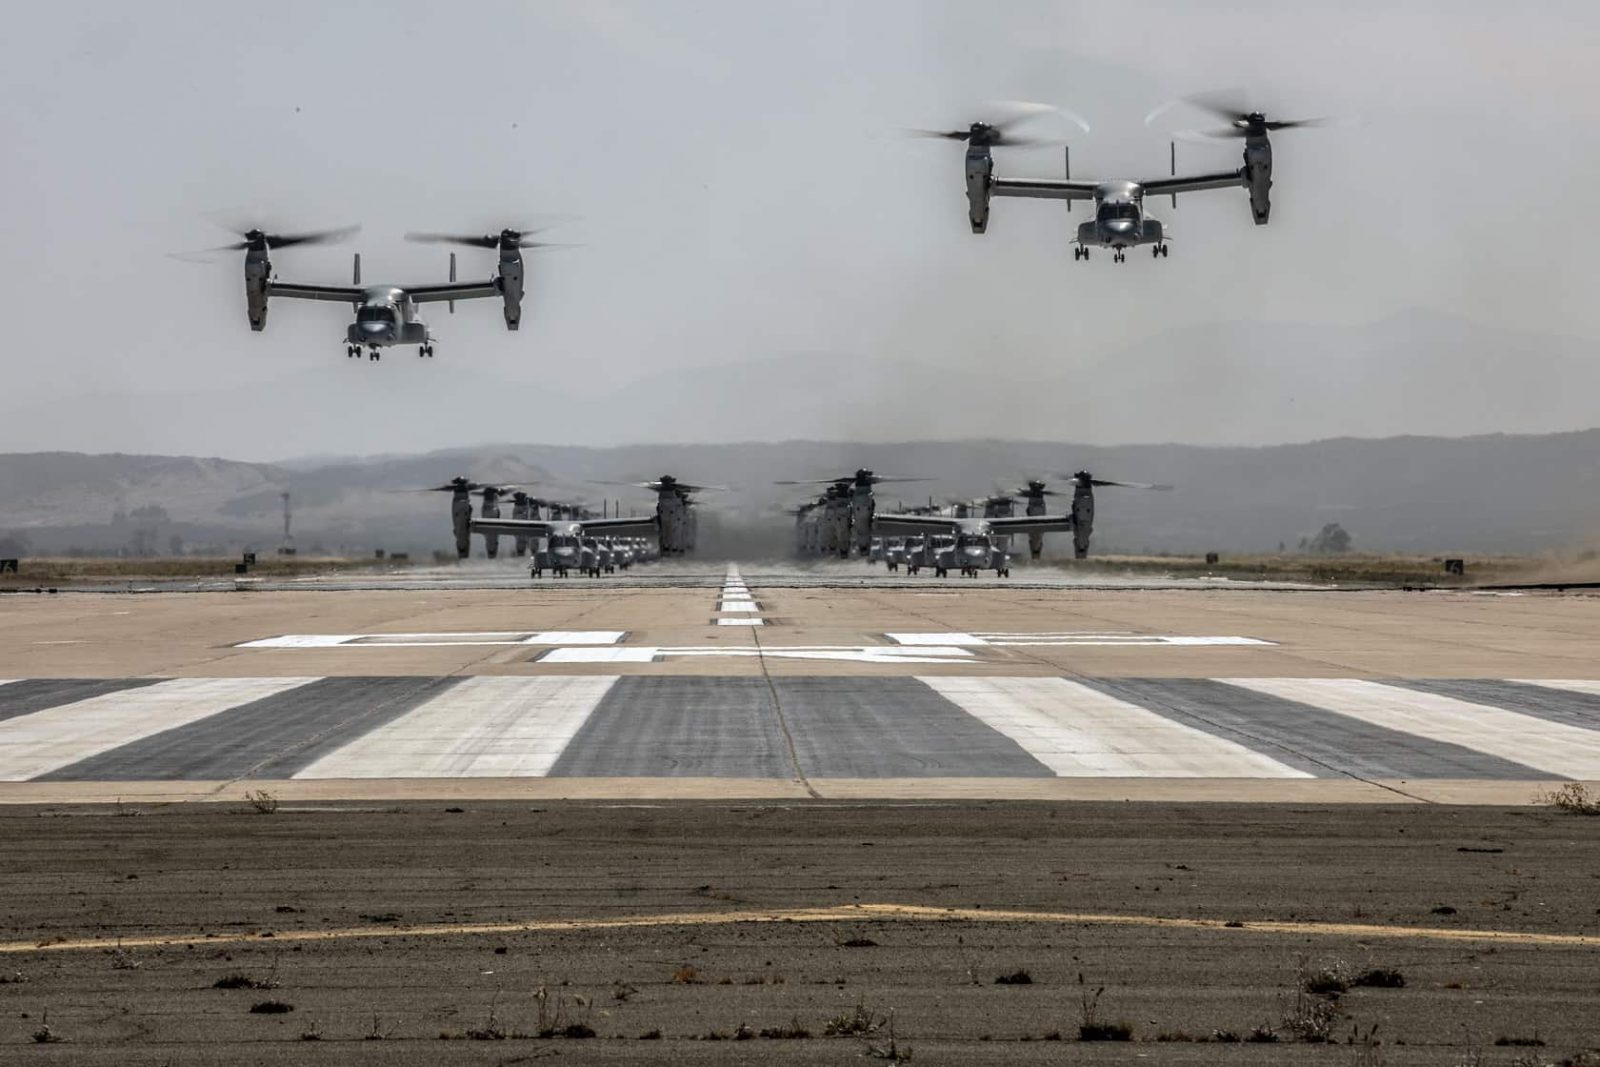 USMC 24 MV-22B Ospreys & 16 CH-53E Super Stallions Demonstrates Awesome Combat Power During Monumental Mass Flight